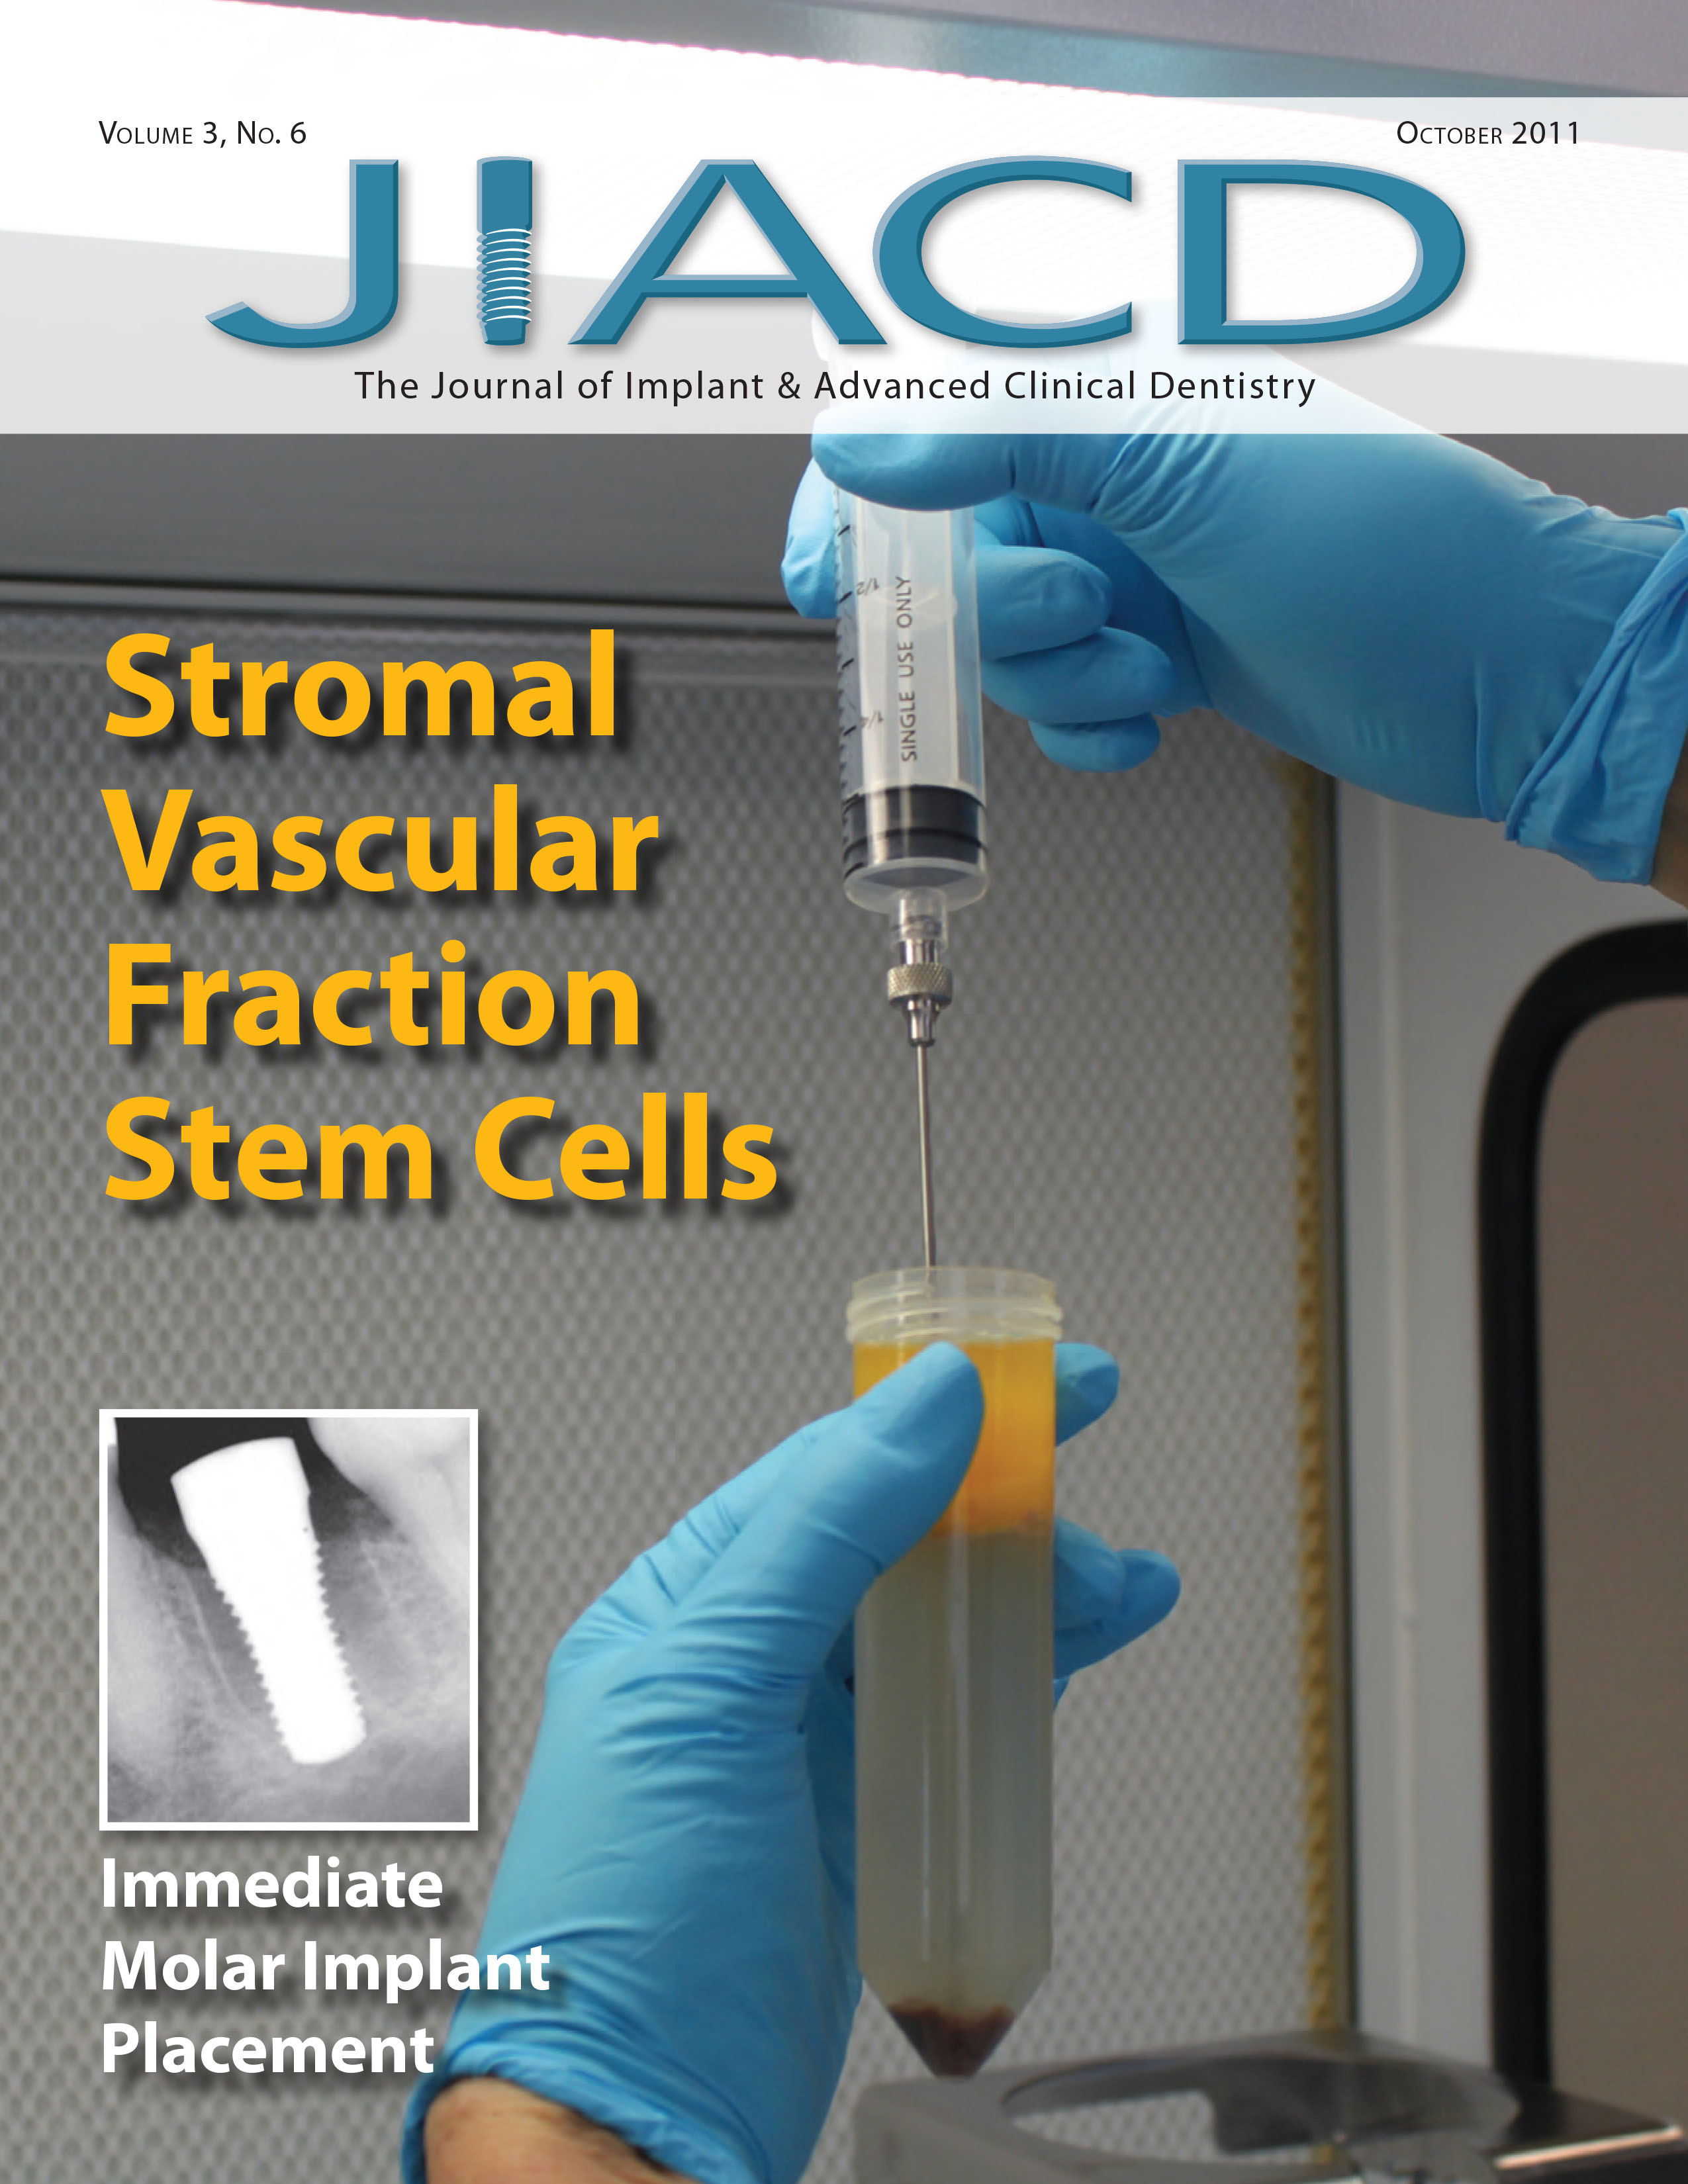 Stromal Vascular Fraction Stem Cells